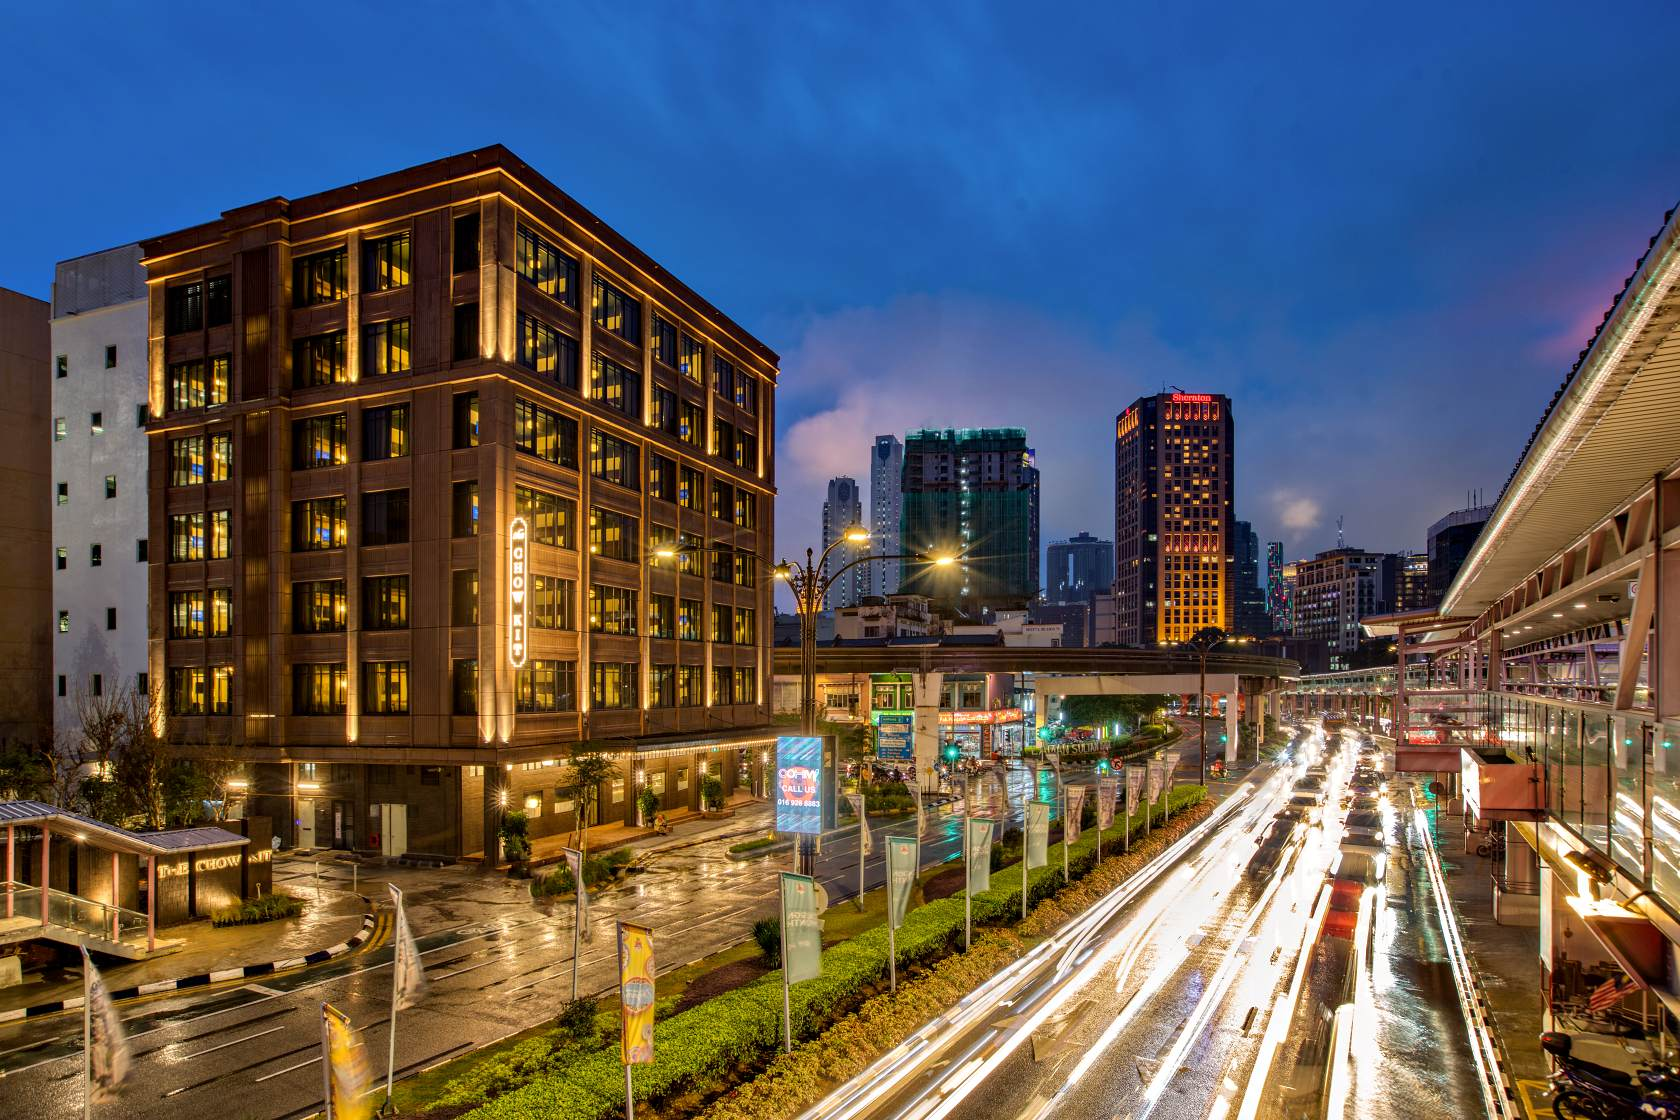 The Chow Kit hotel puts Malaysia on the map with two new awards